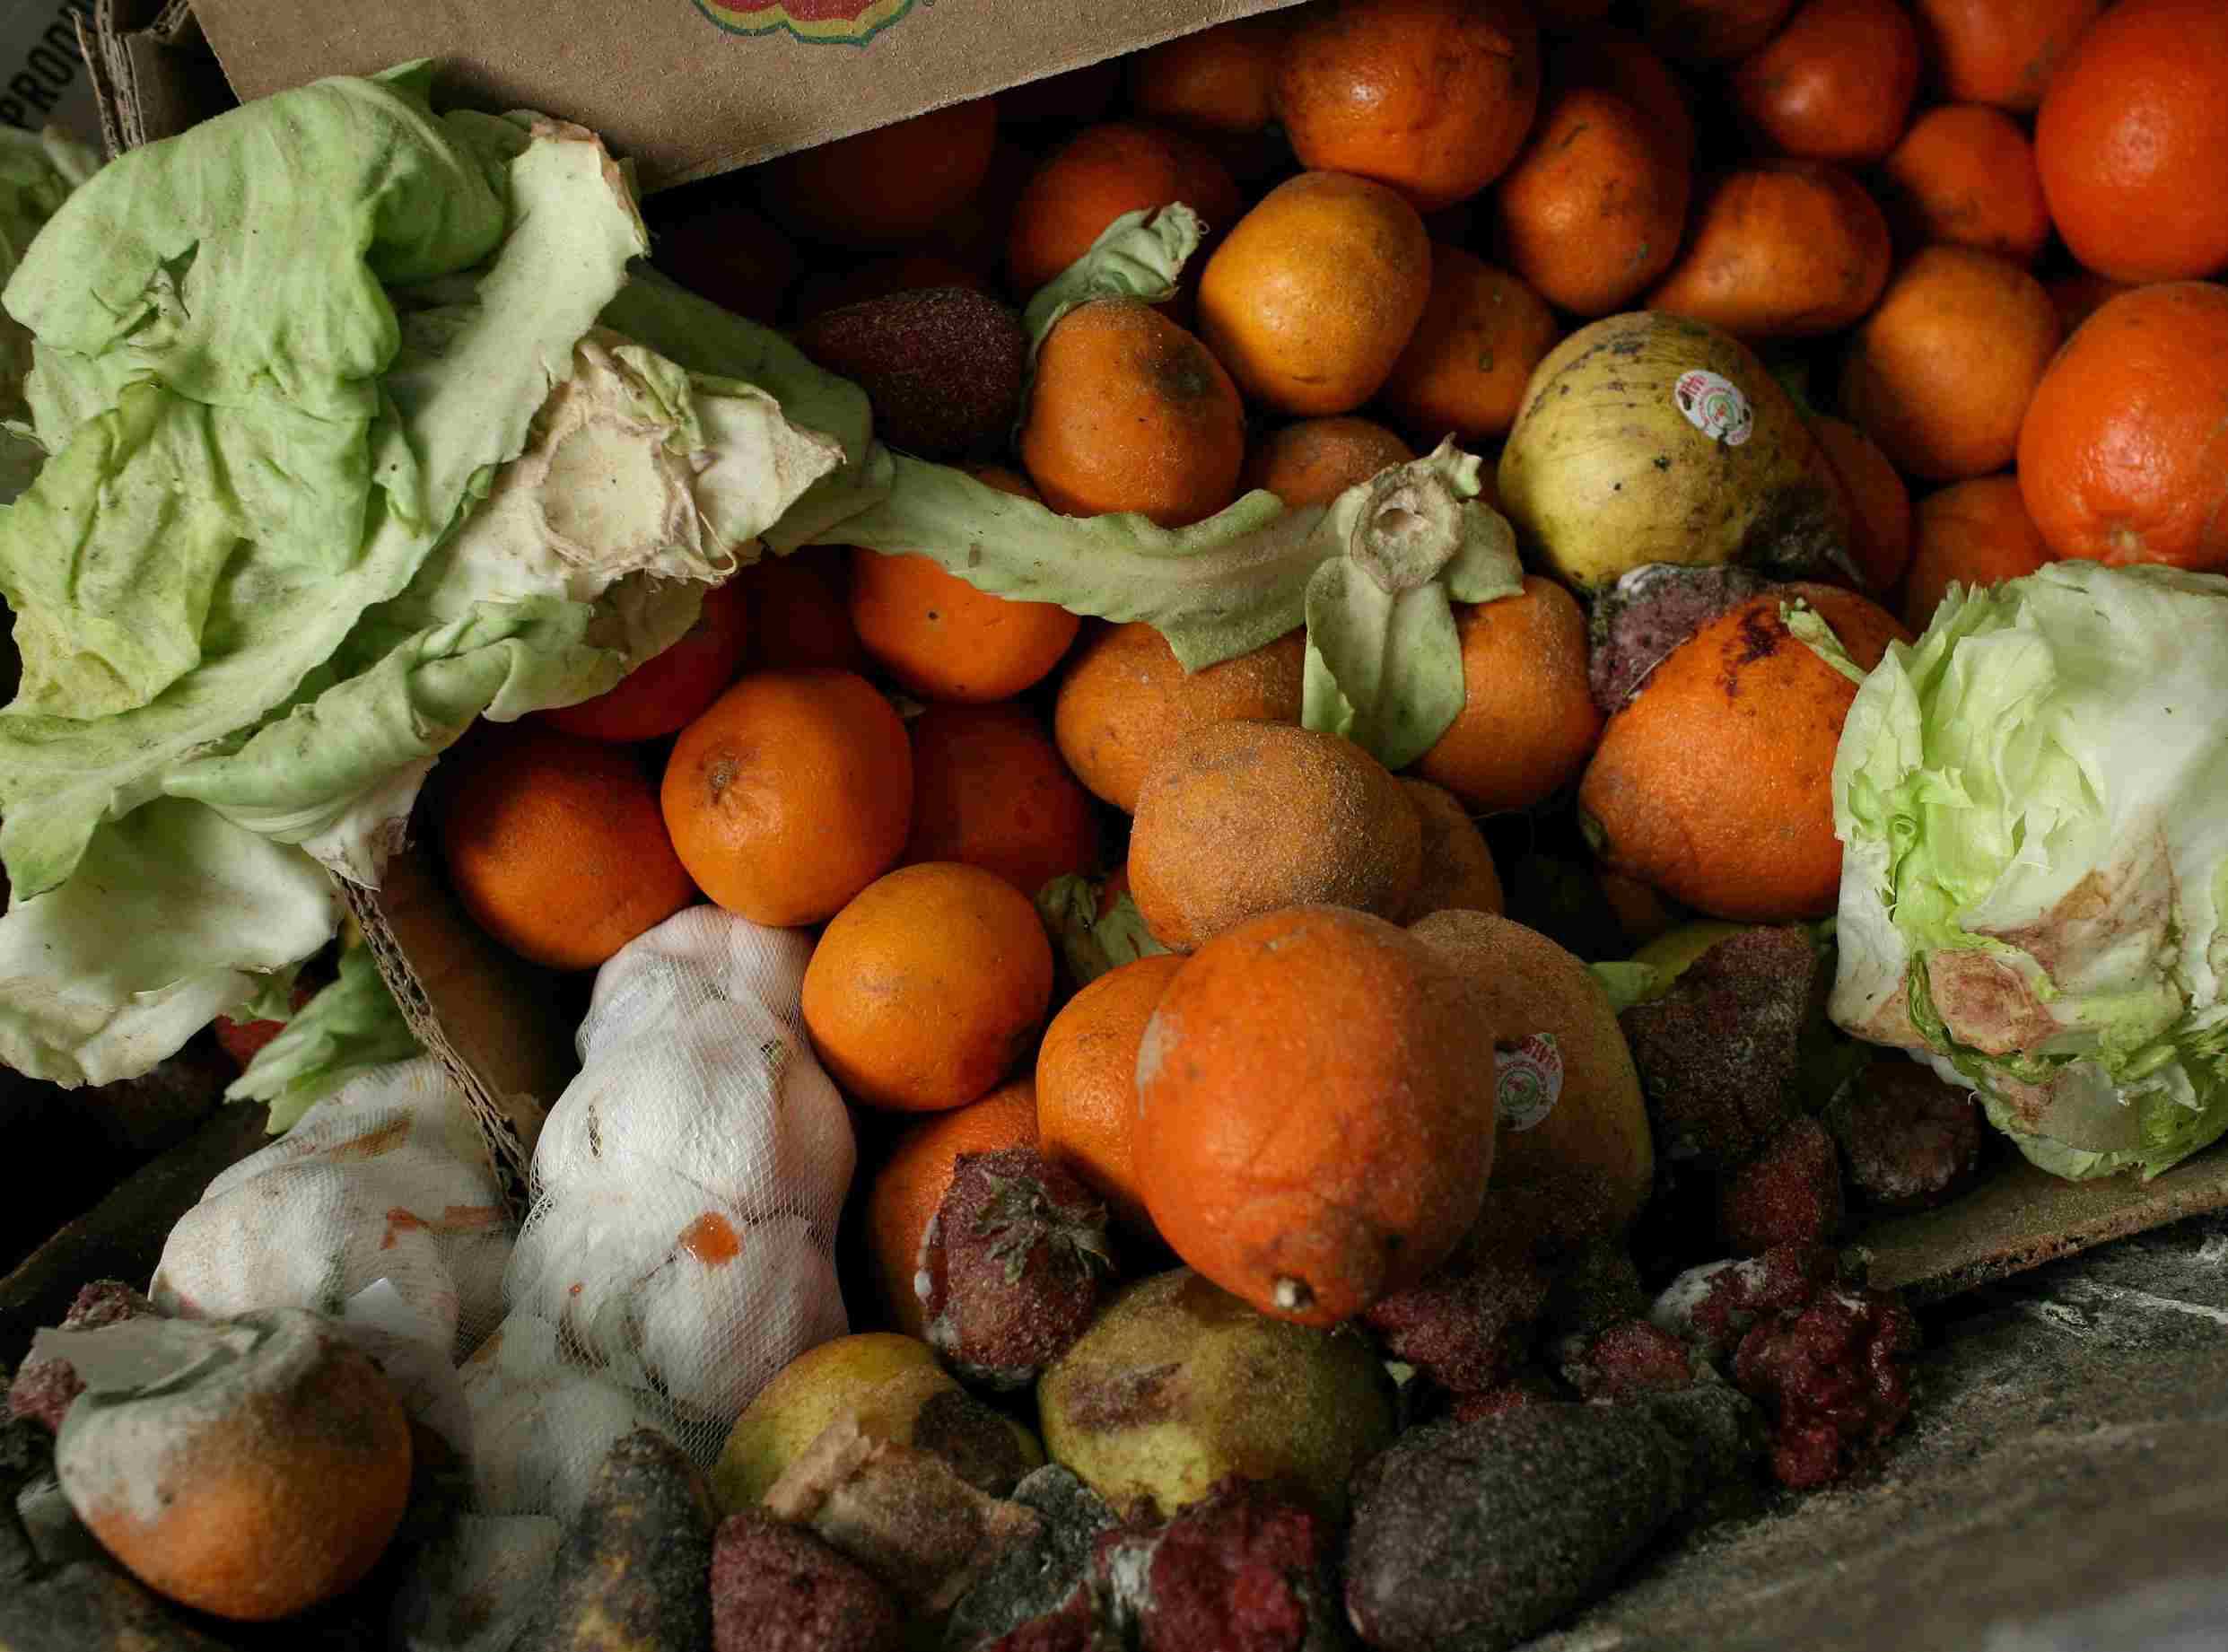 Rotten moldy food, including oranges and lettuce.